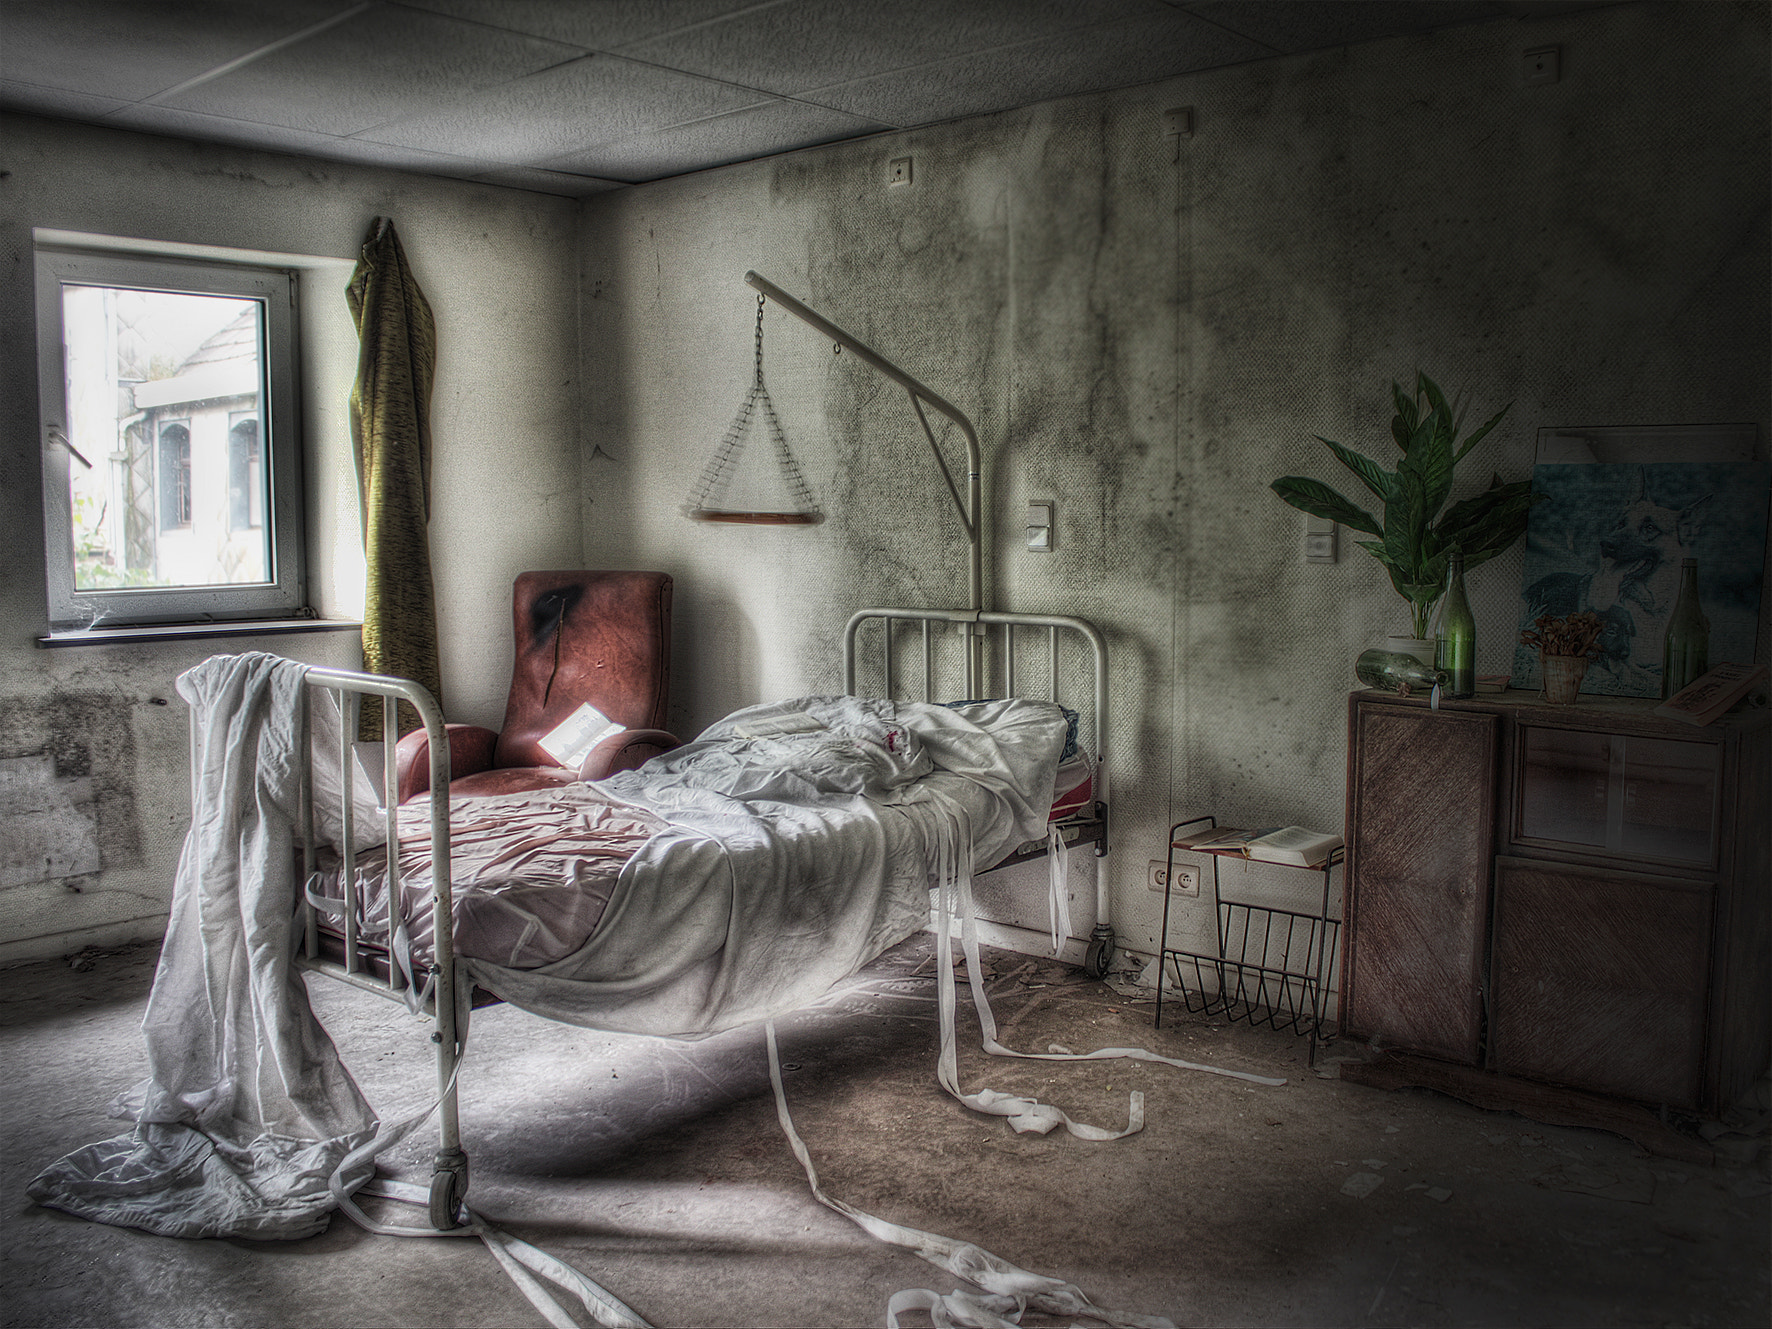 Photograph Hospital by Nathalie  on 500px